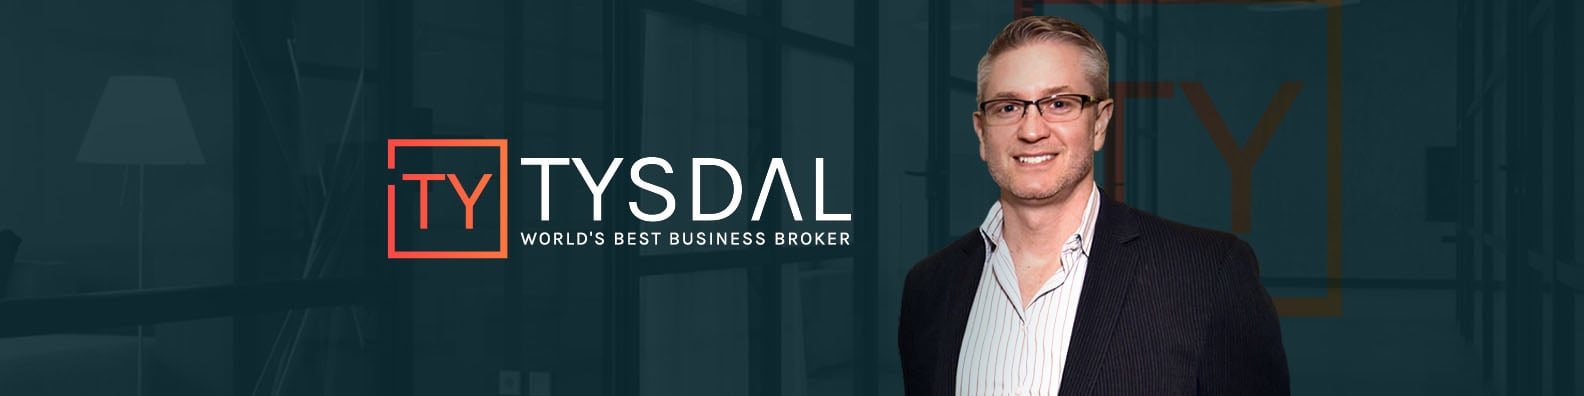 Tyler Tysdal Entrepreneur and Investor Denver Colorado